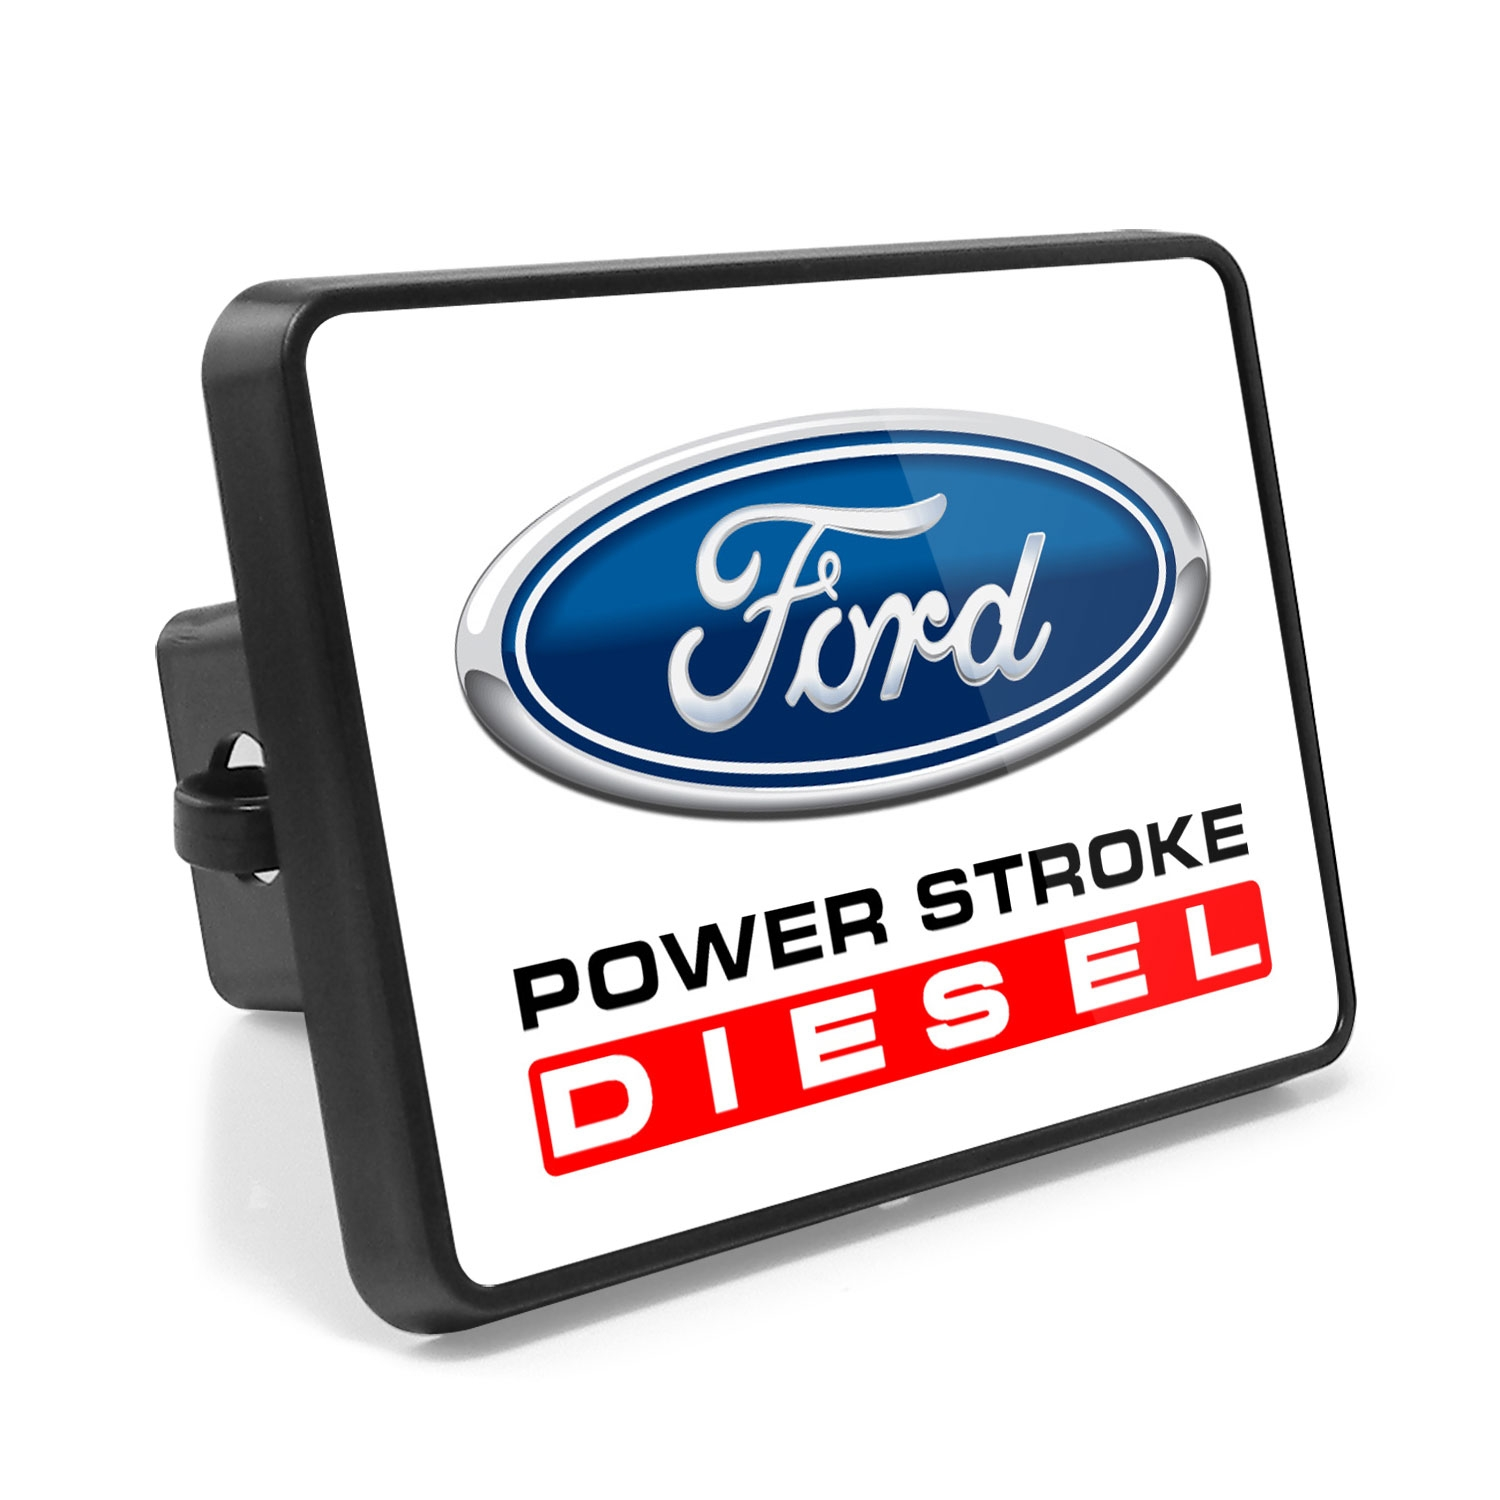 Ford Power-Stroke Diesel UV Graphic White Metal Plate on ABS Plastic 2 inch Tow Hitch Cover